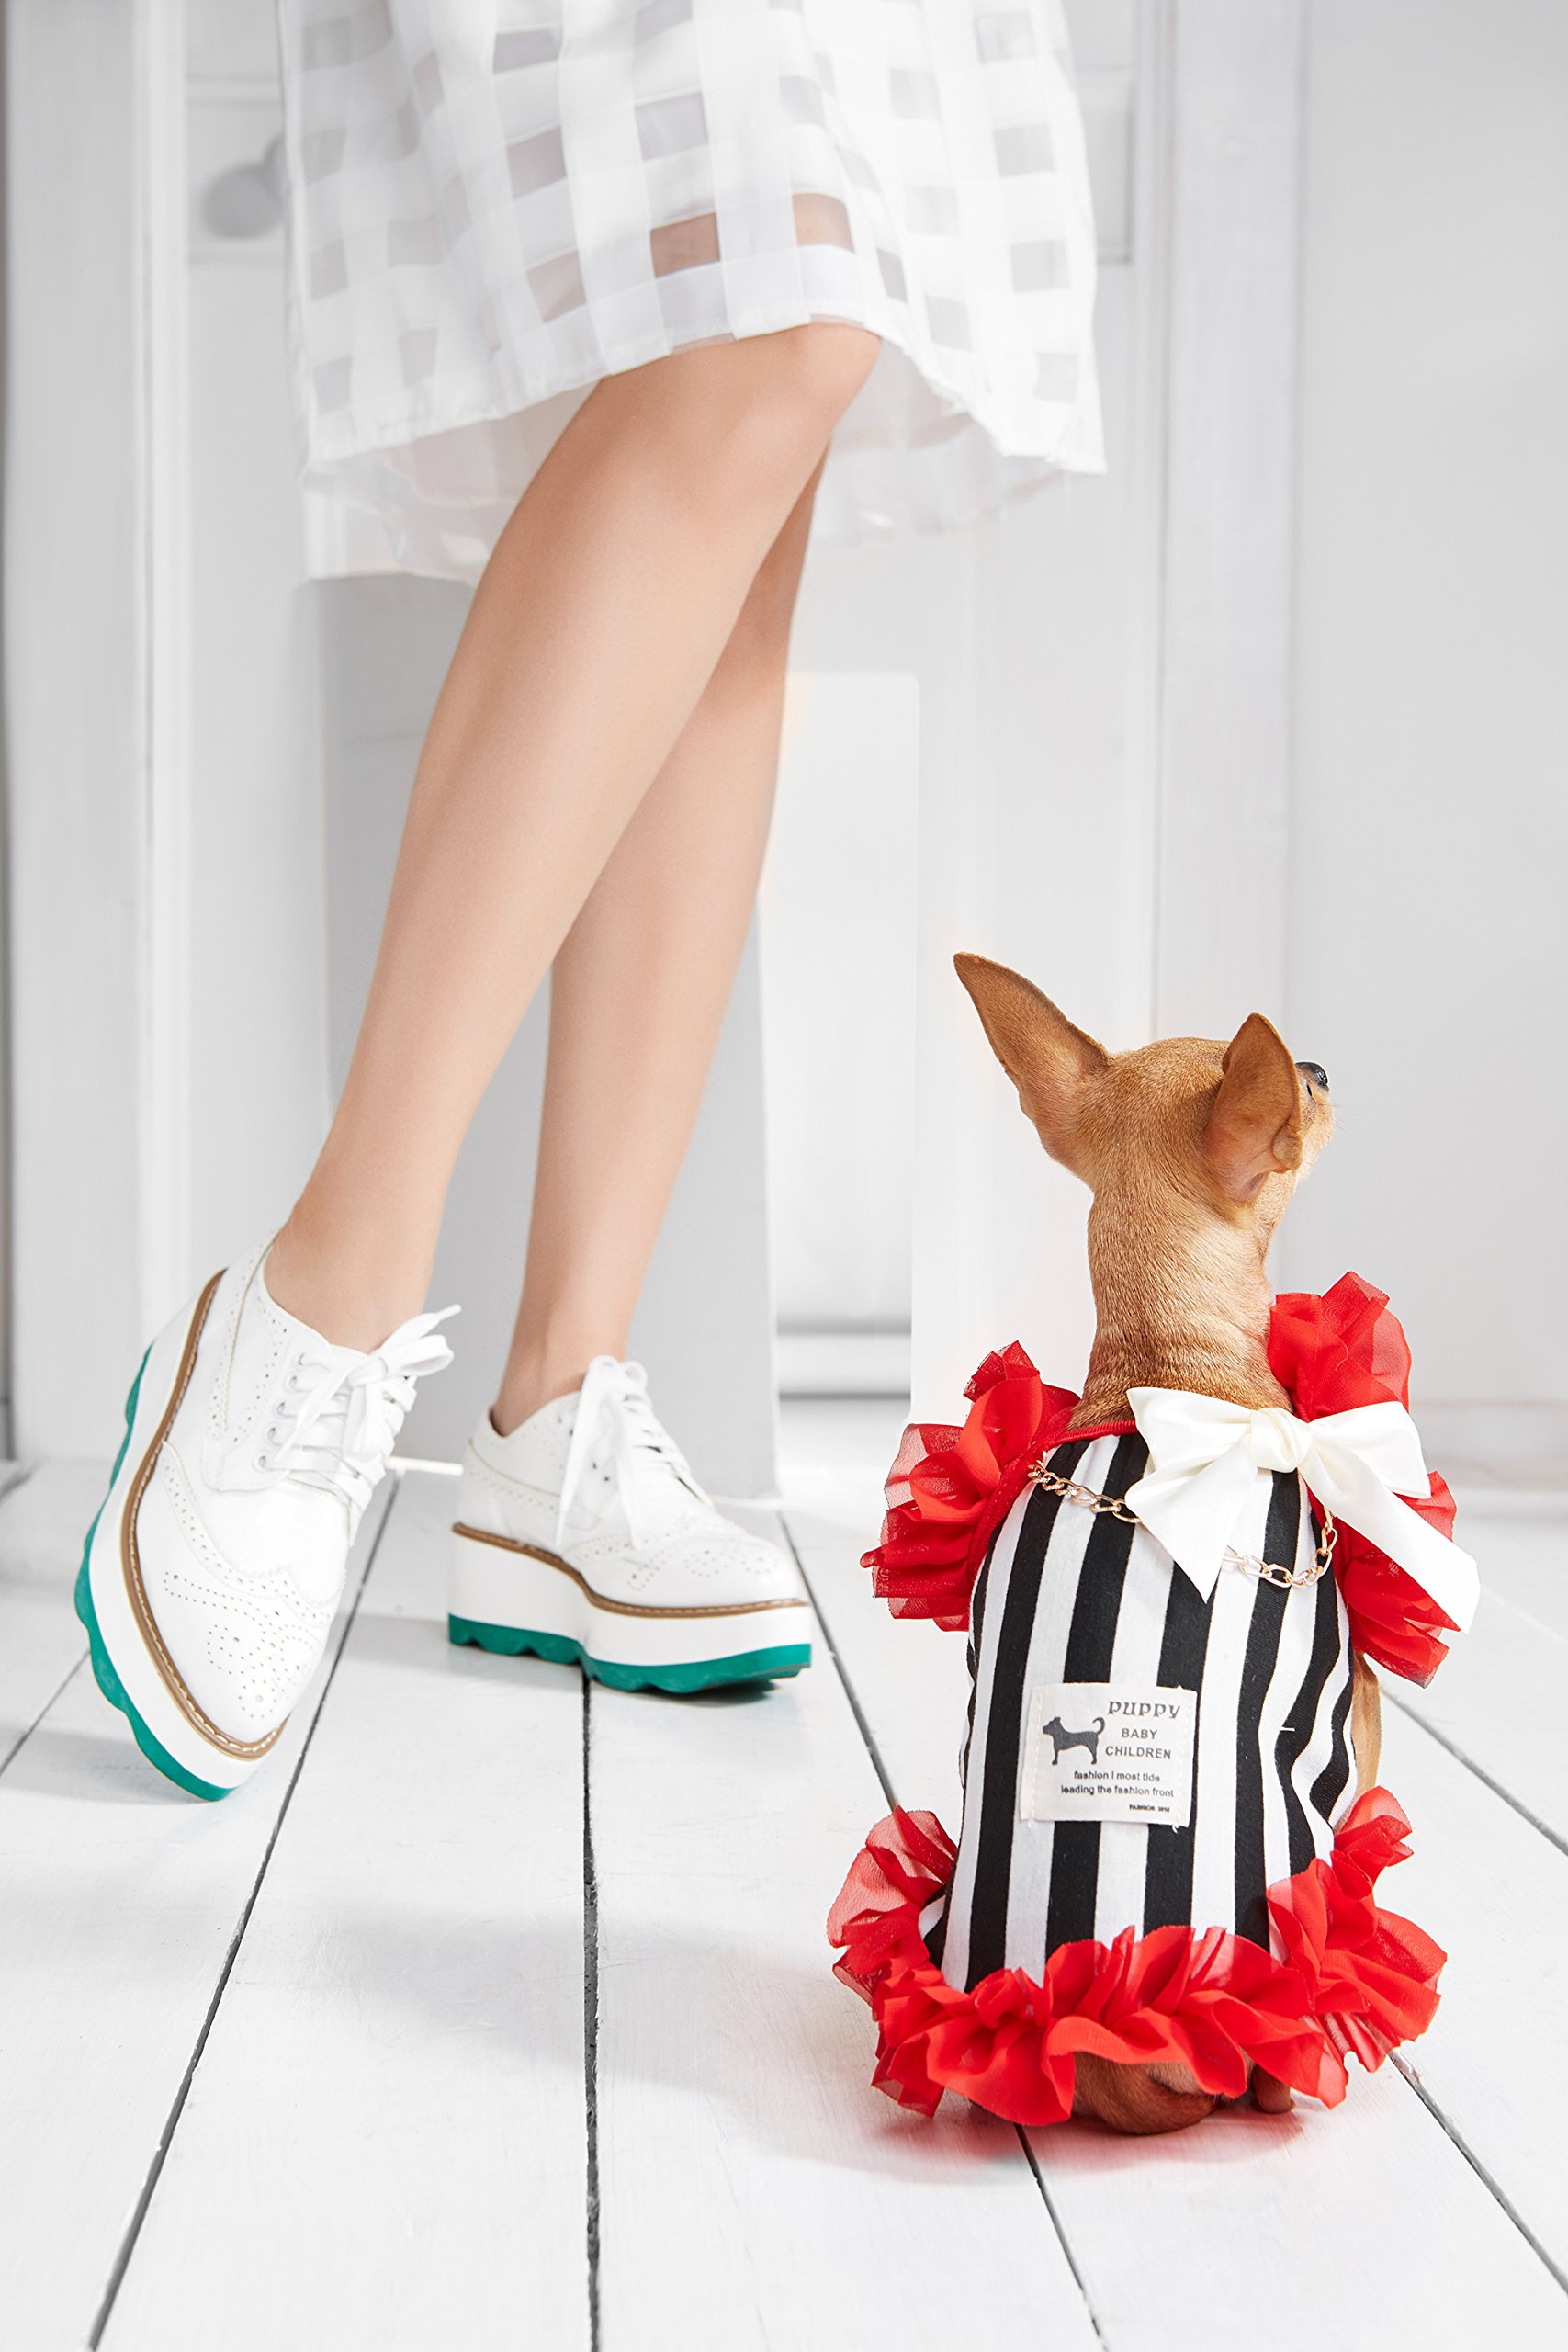 """Small Dog Striped Dress With Ruffles Satin Bow Chain Dogs Cotton Summer Clothes (Toy Plus: 10"""" / 5-9 lbs, Red, Black, White) by Nothing But Love Pets (Image #7)"""